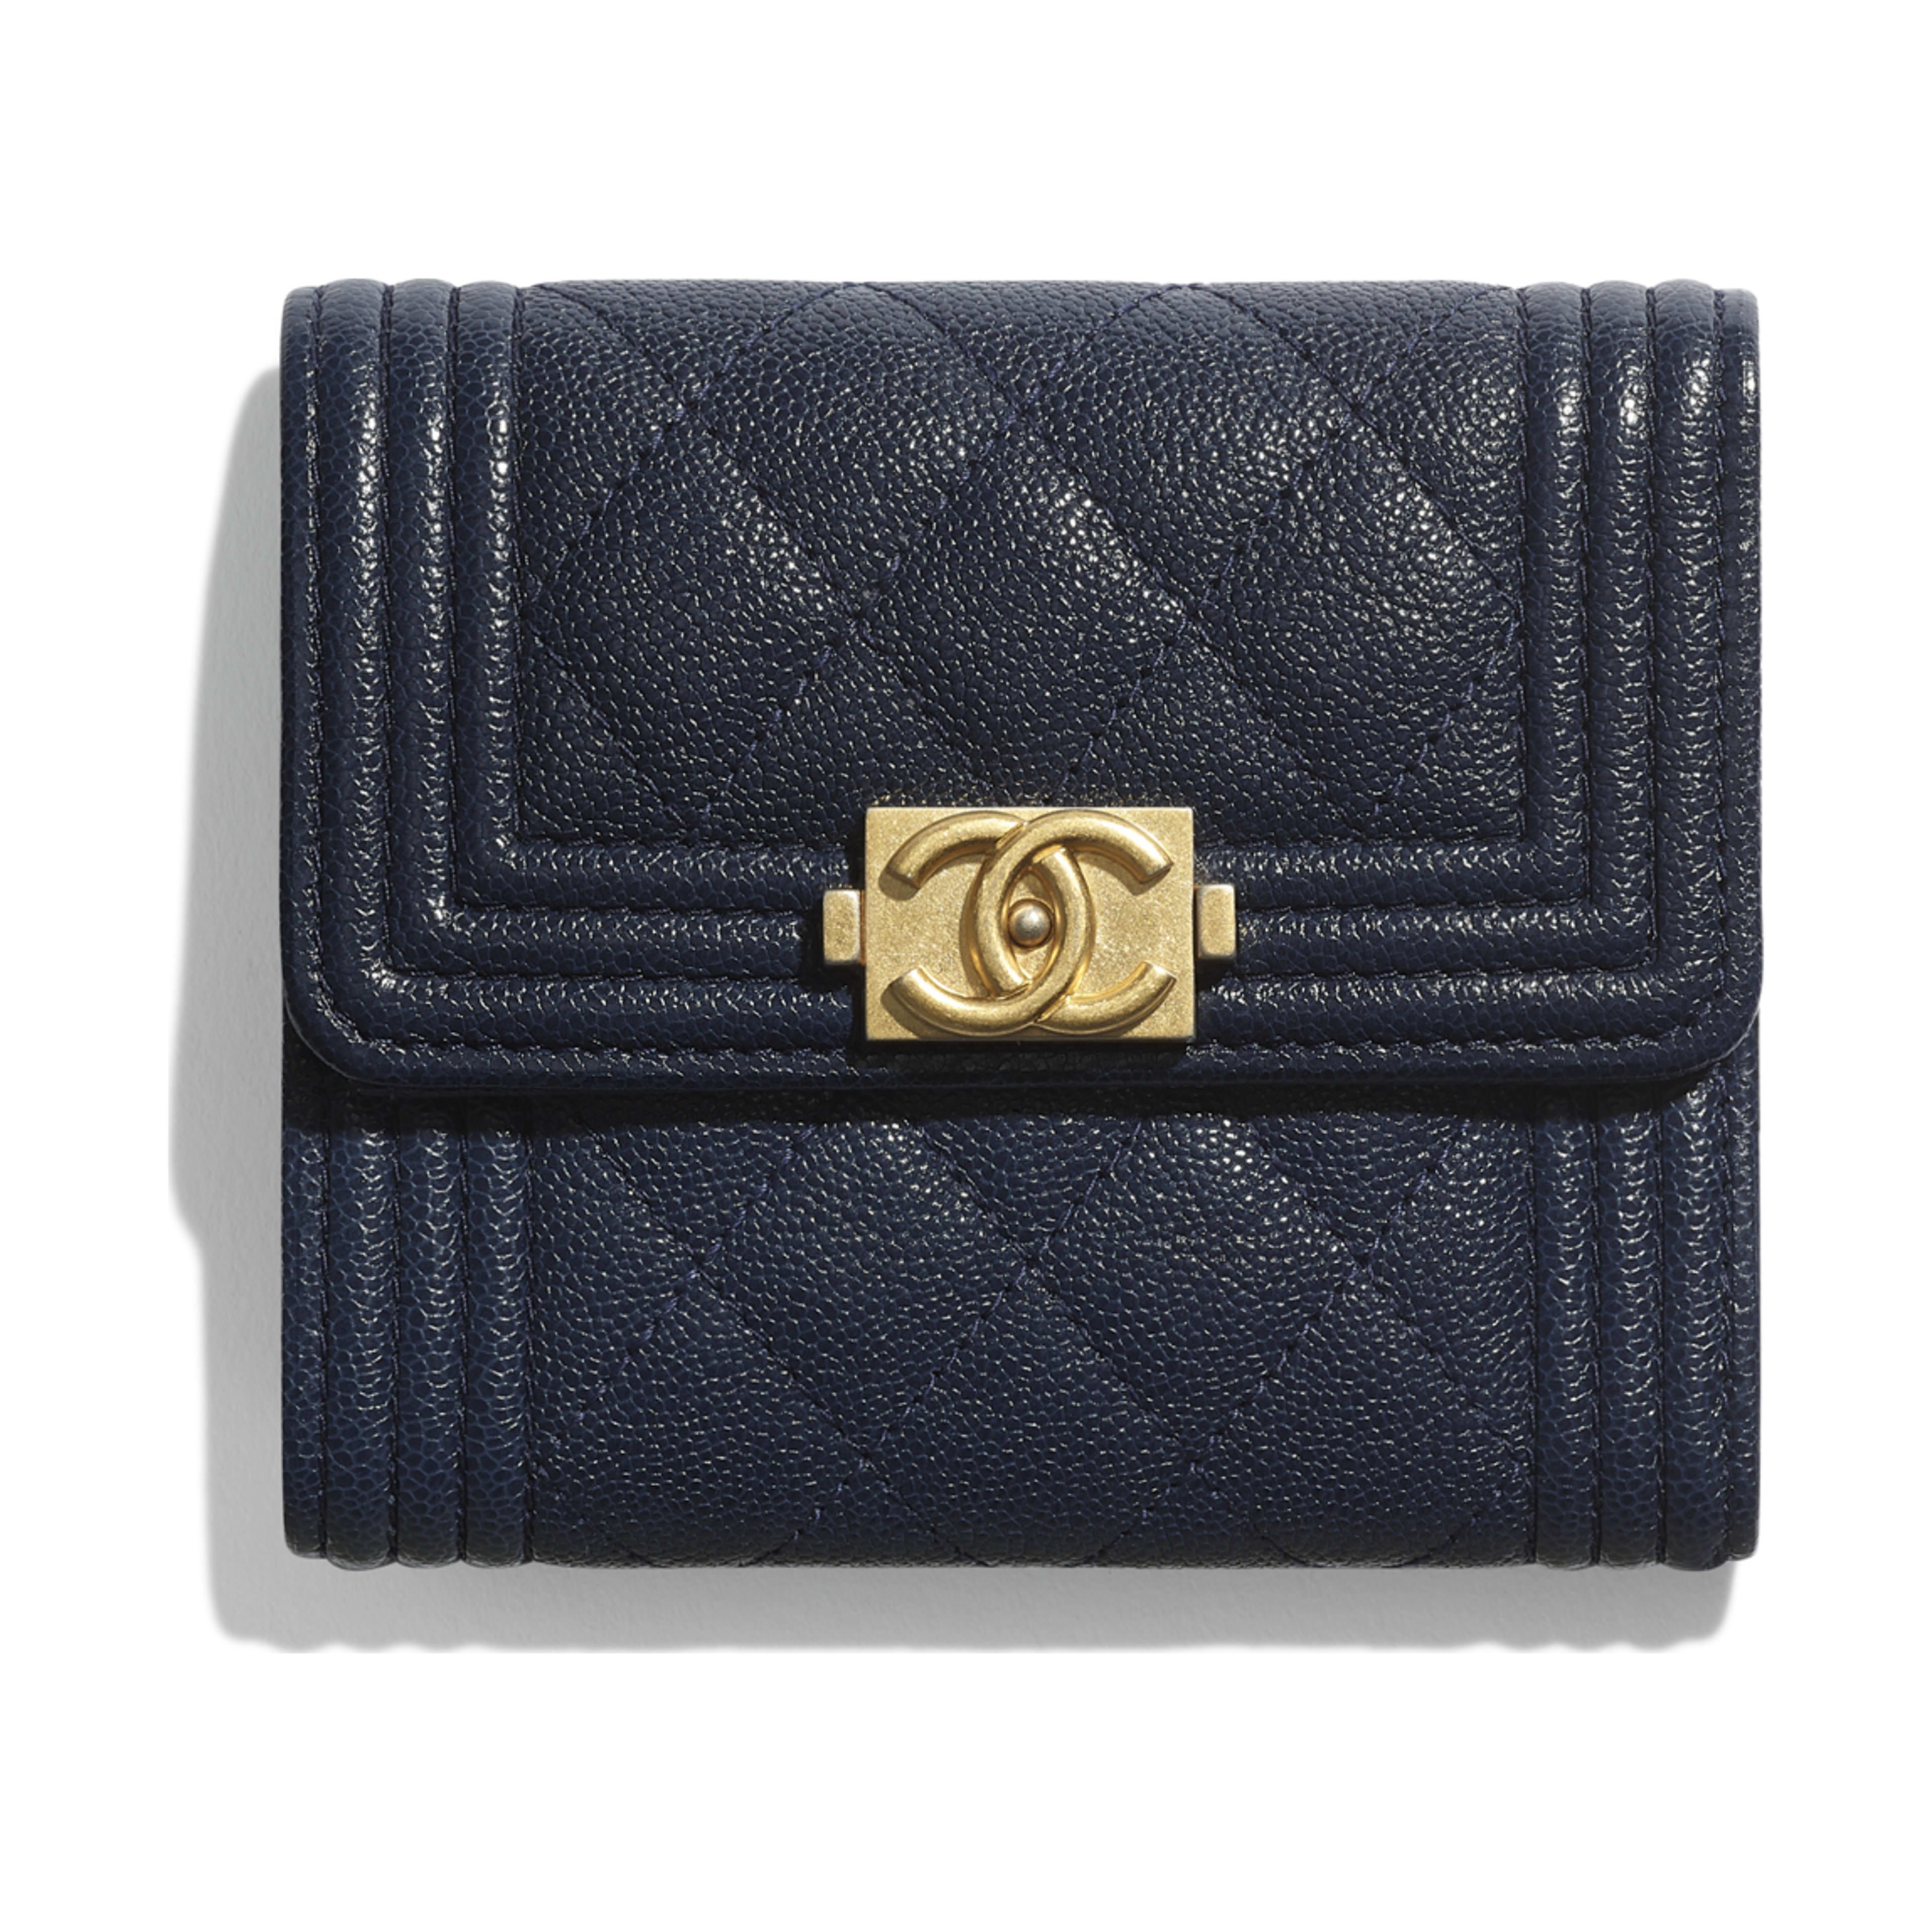 fc966476382221 Grained Calfskin Gold Tone Metal Navy Blue Boy Chanel Small Flap